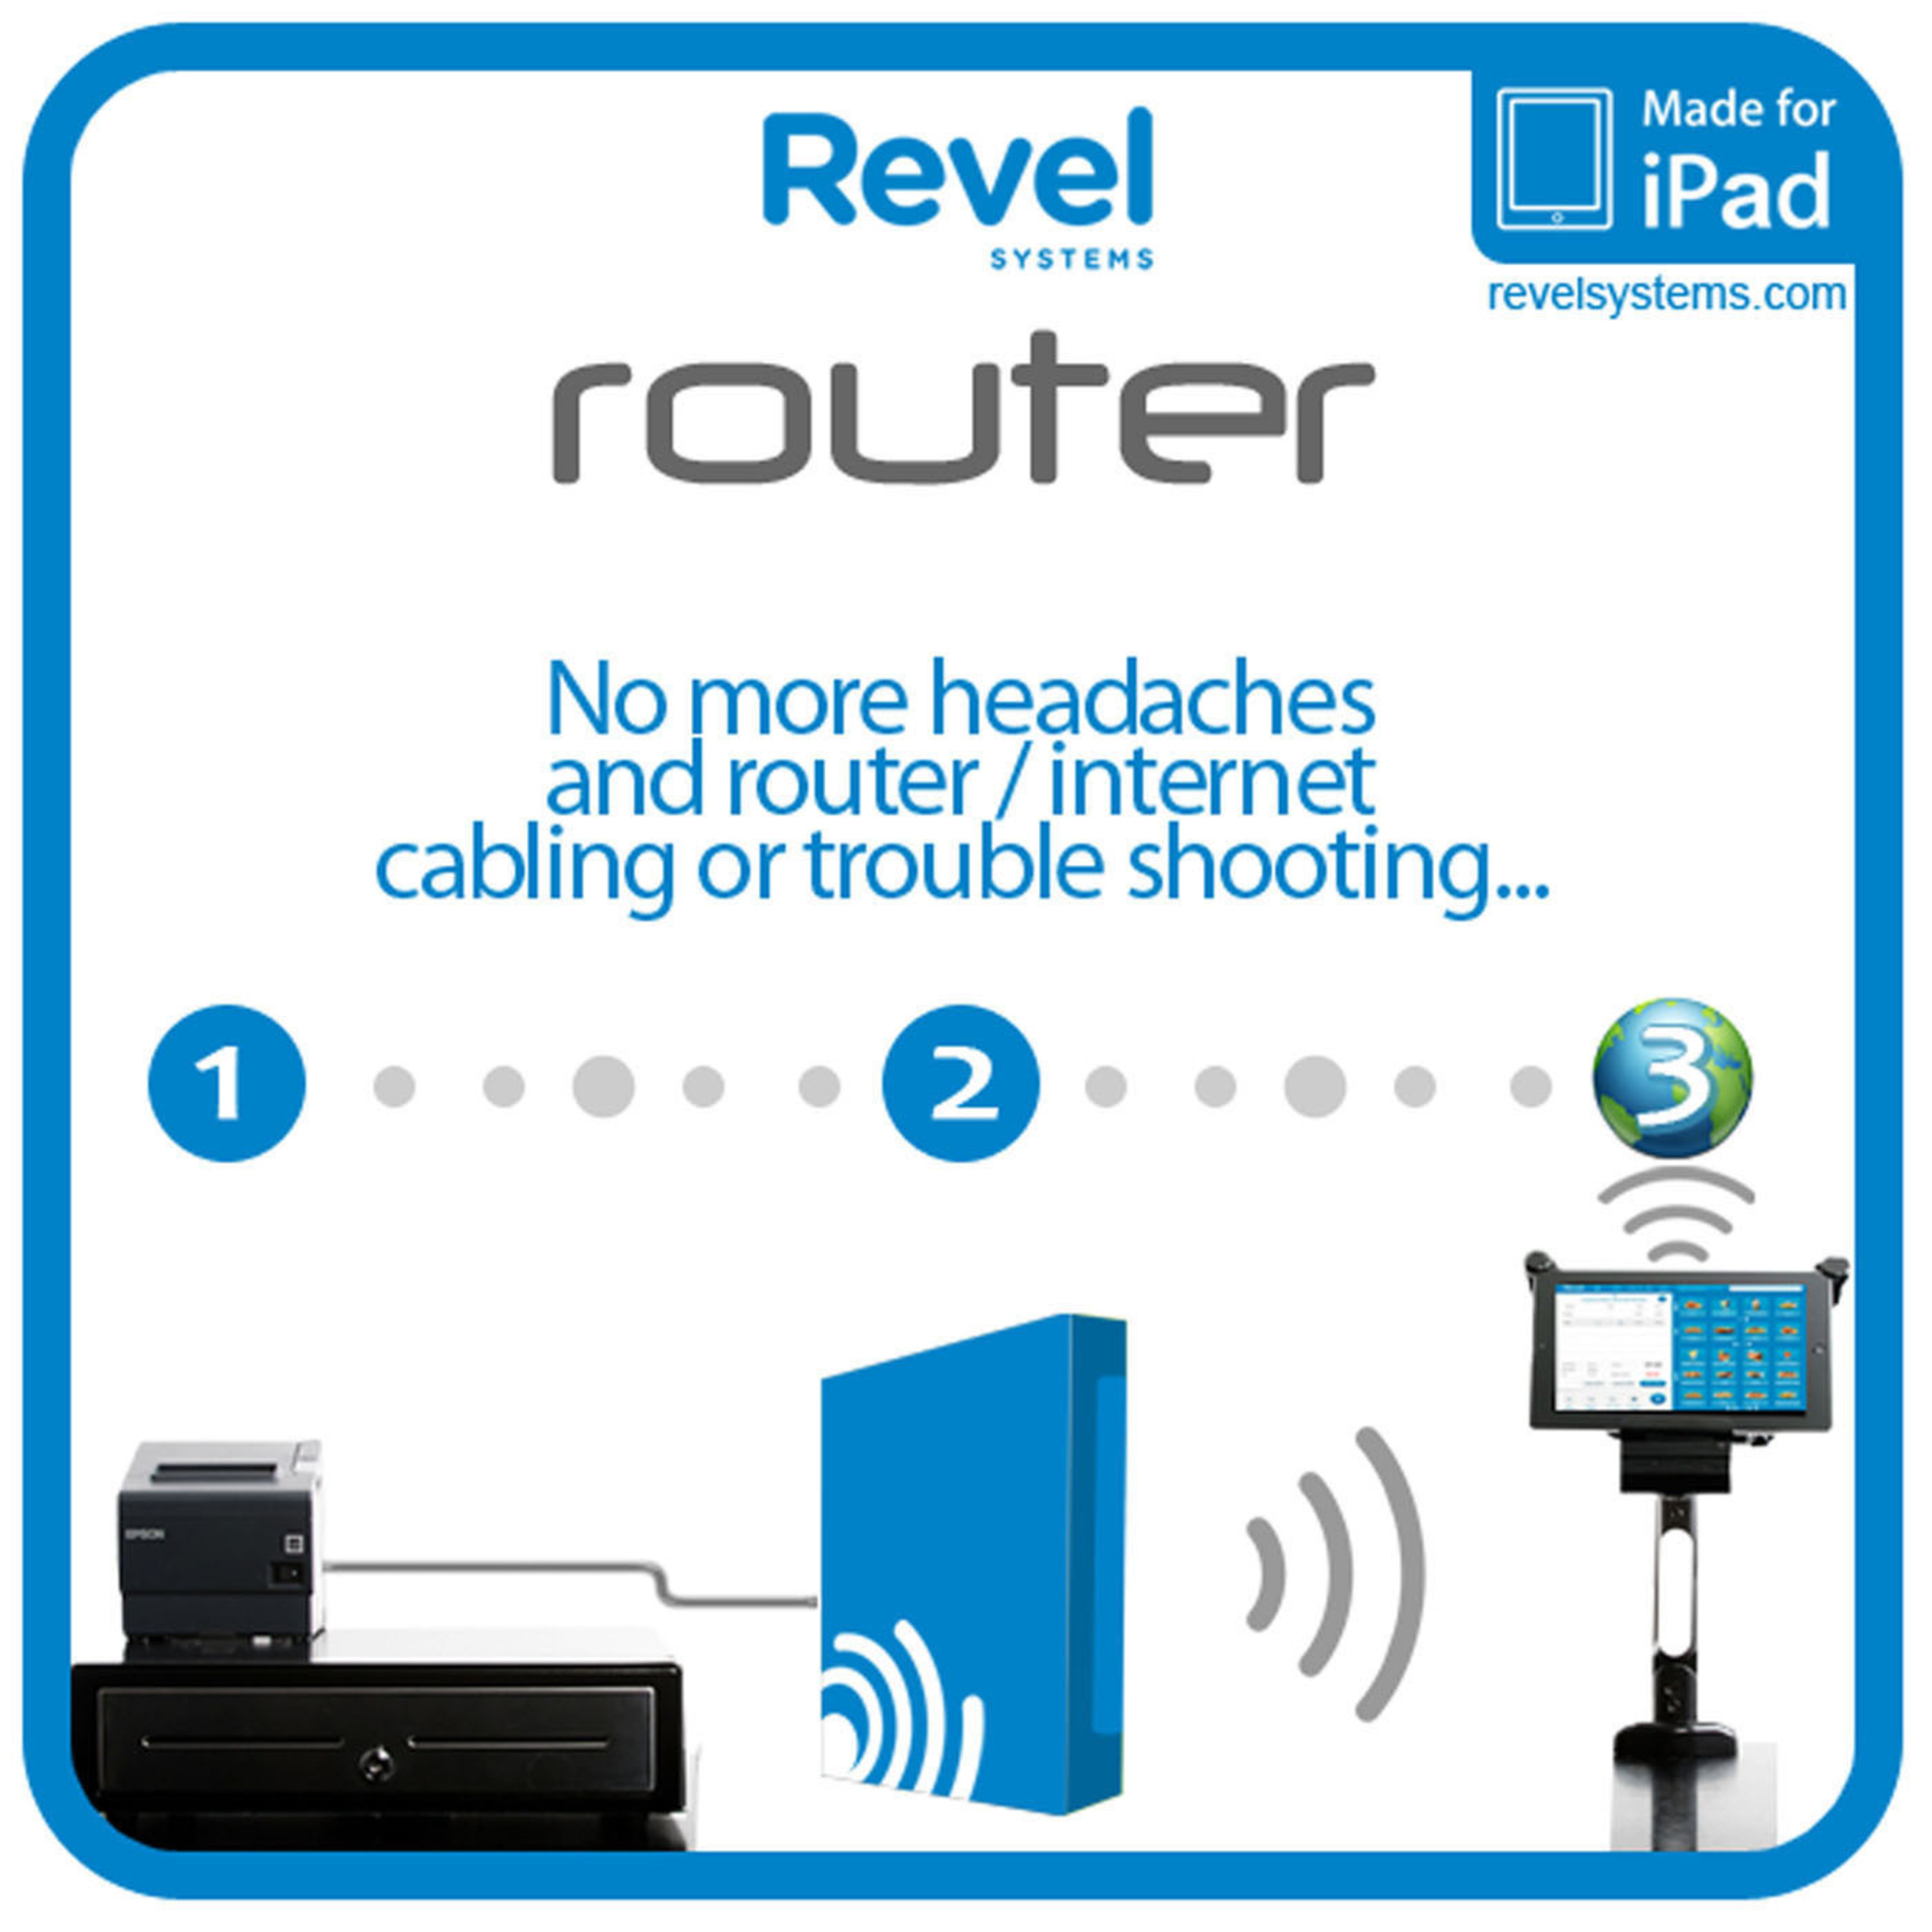 Revel Systems Releases the Revel Router to Change Point-of-Sale Industry Exclusively With Verizon